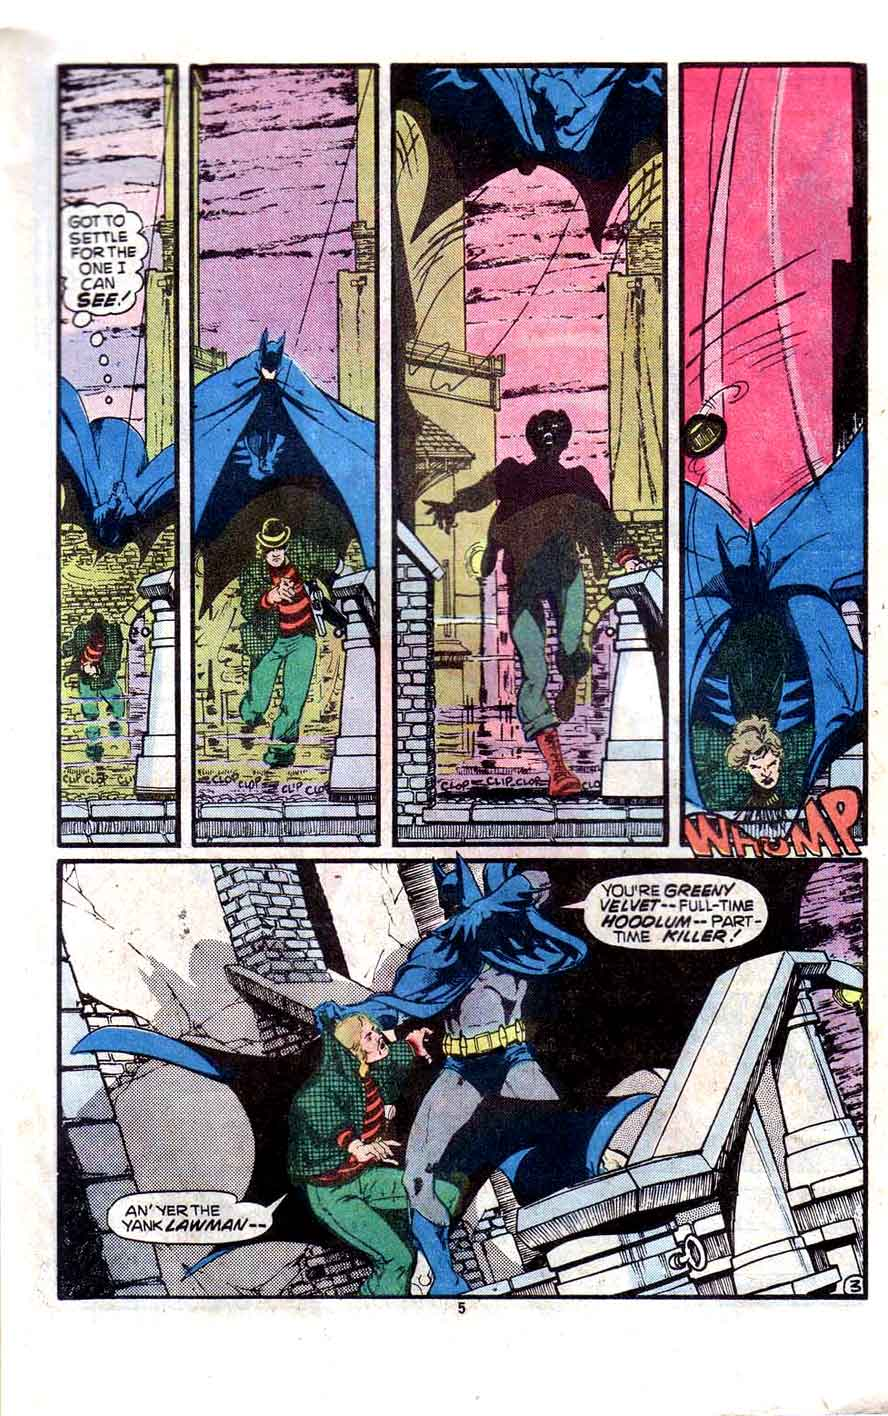 Detective Comics v1 #481 dc comic book page art by Marshall Rogers